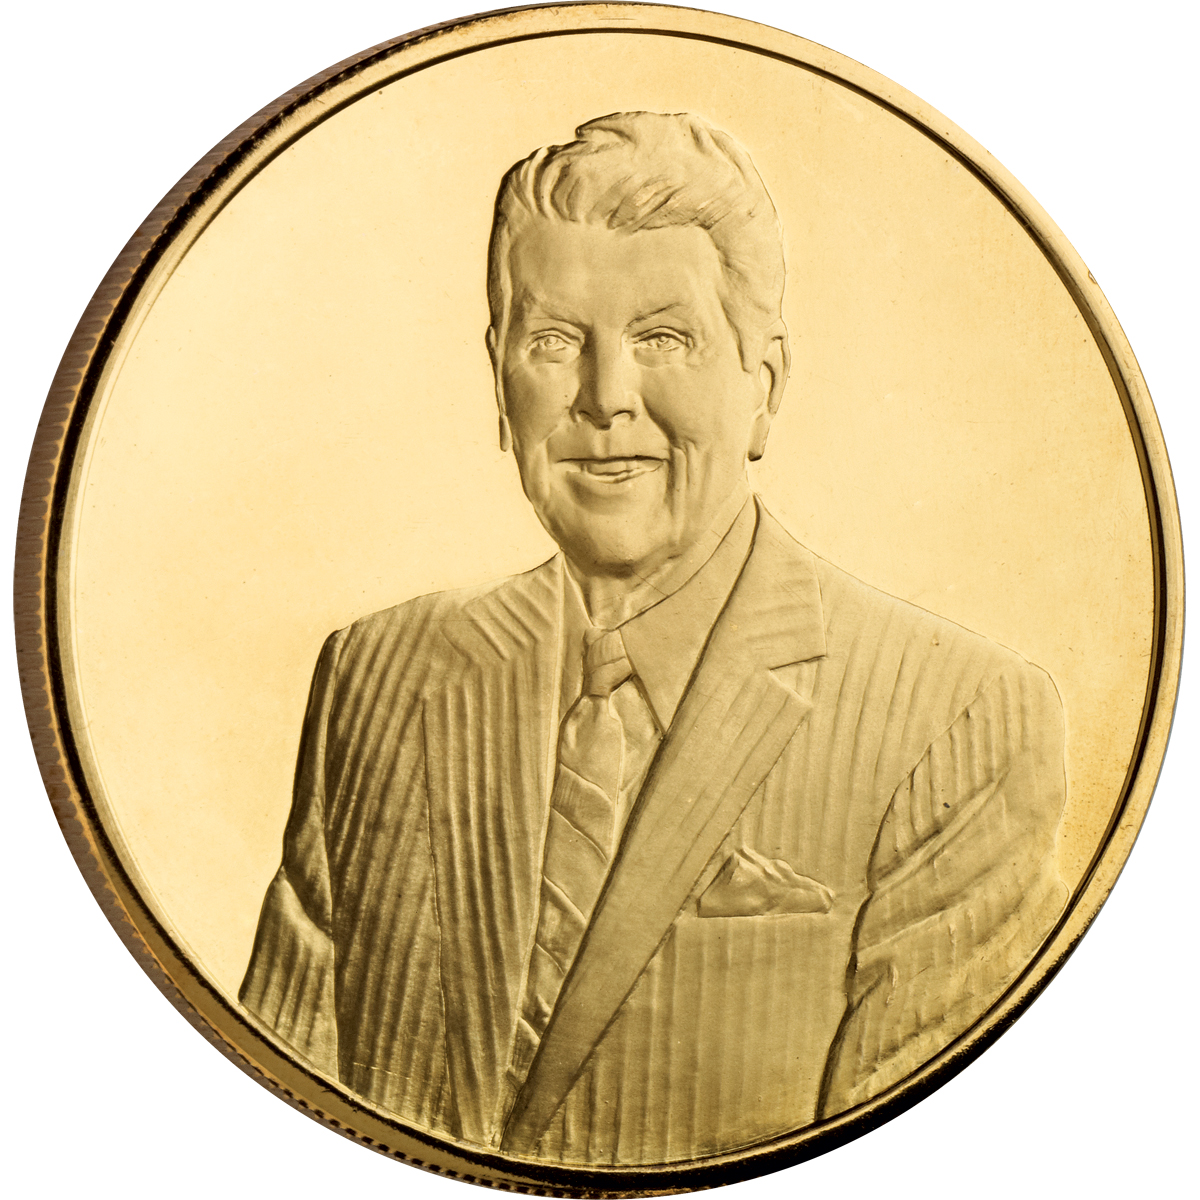 PORTRAIT MEDAL - RONALD REAGAN CENTENNIAL COMMEMORATIVE MEDAL